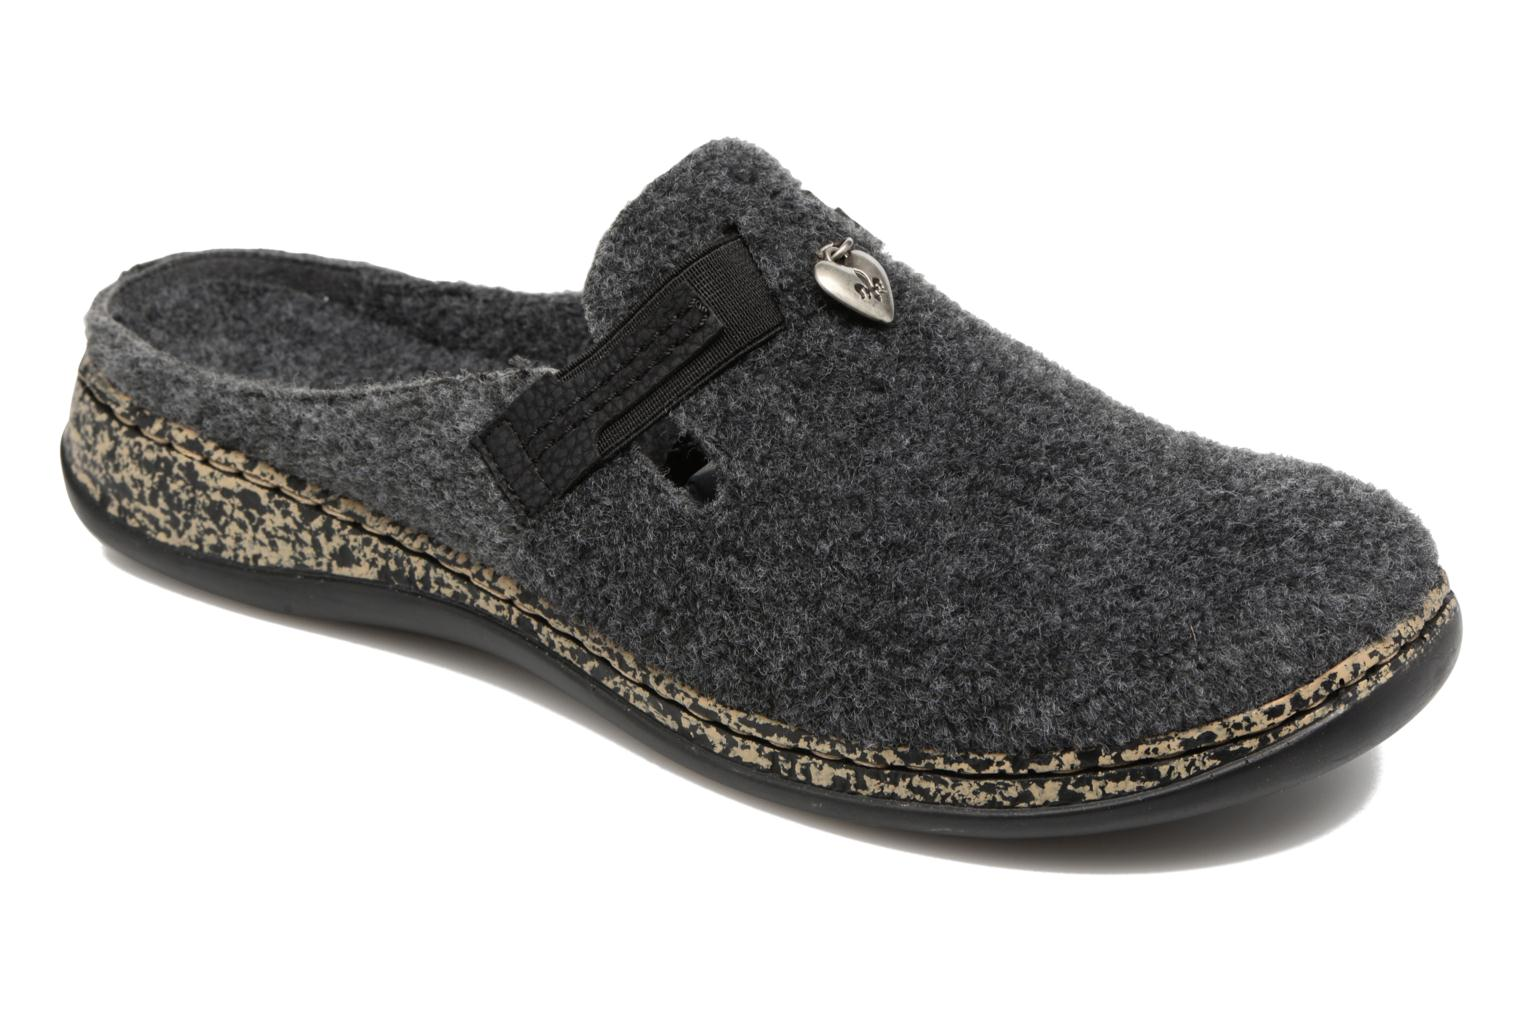 Chaussons Gris Rieker uaeP4g5G9